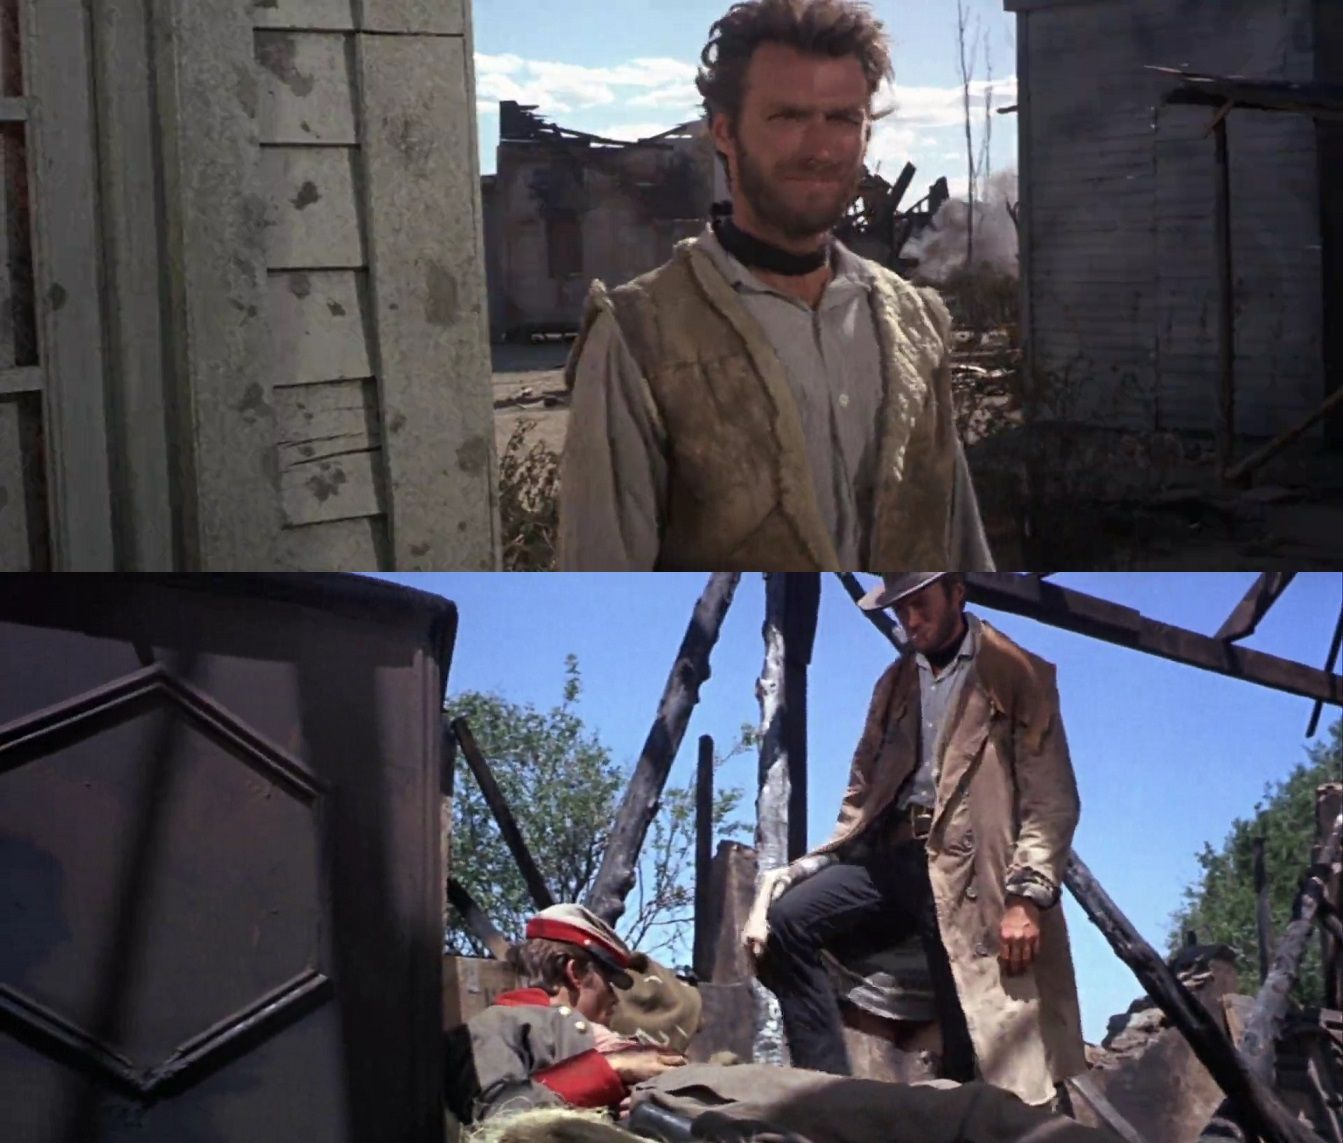 The Good, The Bad and The Ugly Sergio Leone Costumes by Carlo Simi Clin Eastwood